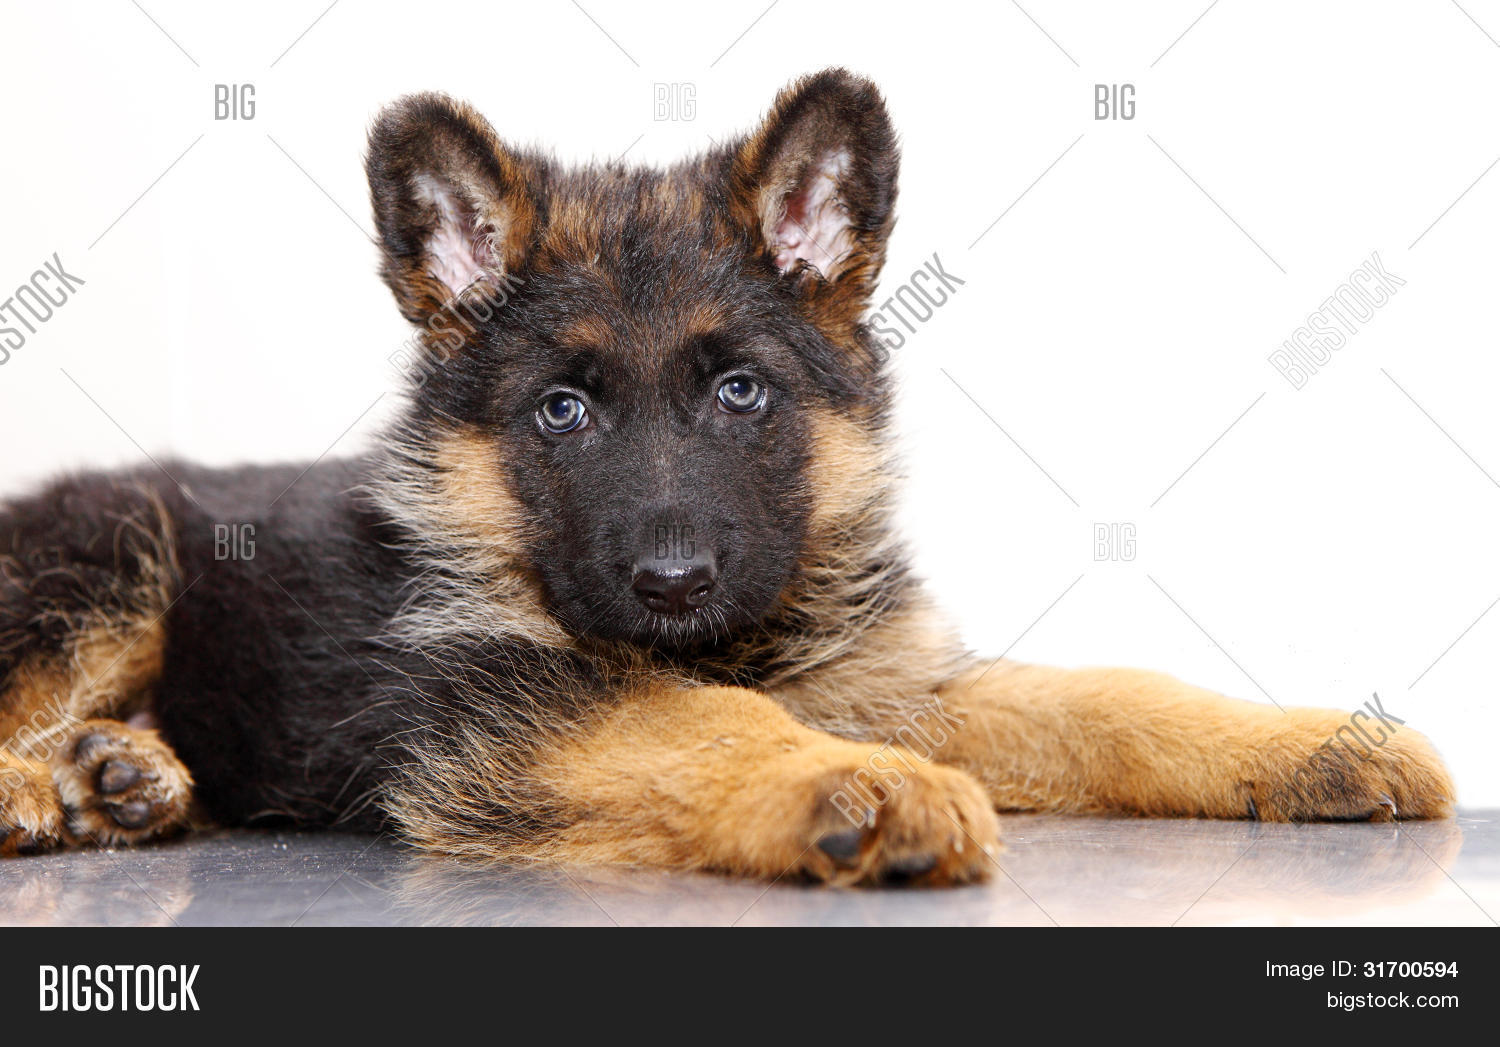 German Shepherd Puppy Image Photo Free Trial Bigstock